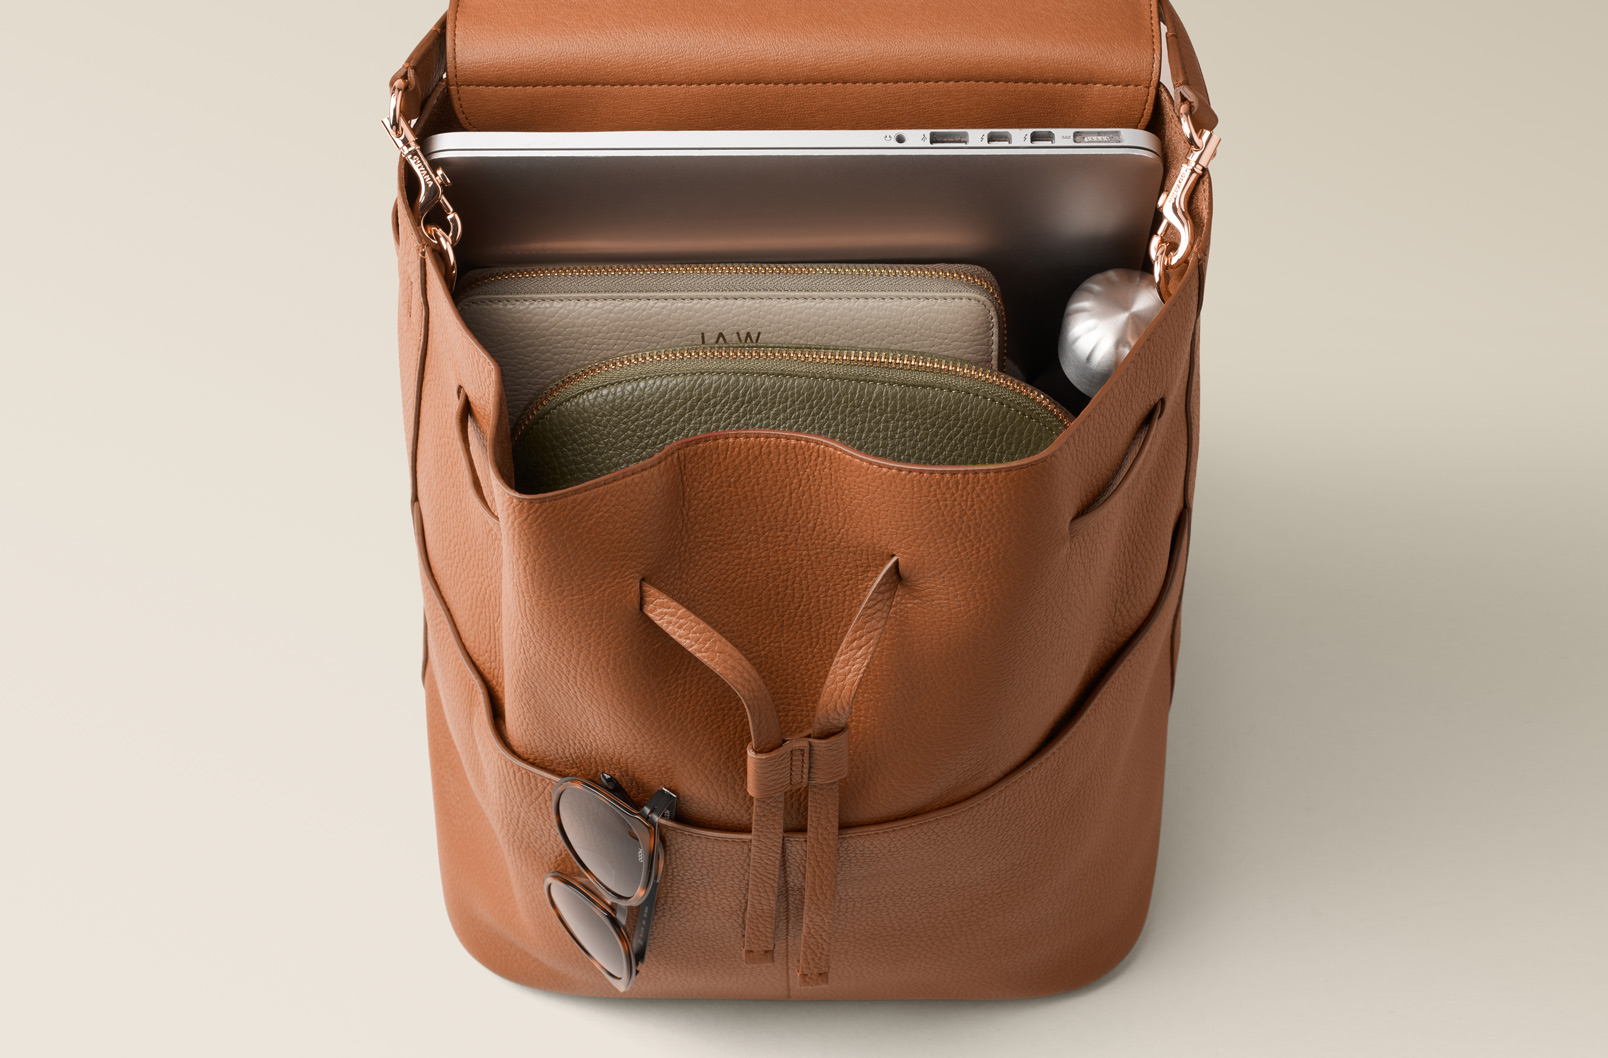 Interior image of Large Leather Backpack with Laptop and notebook inside